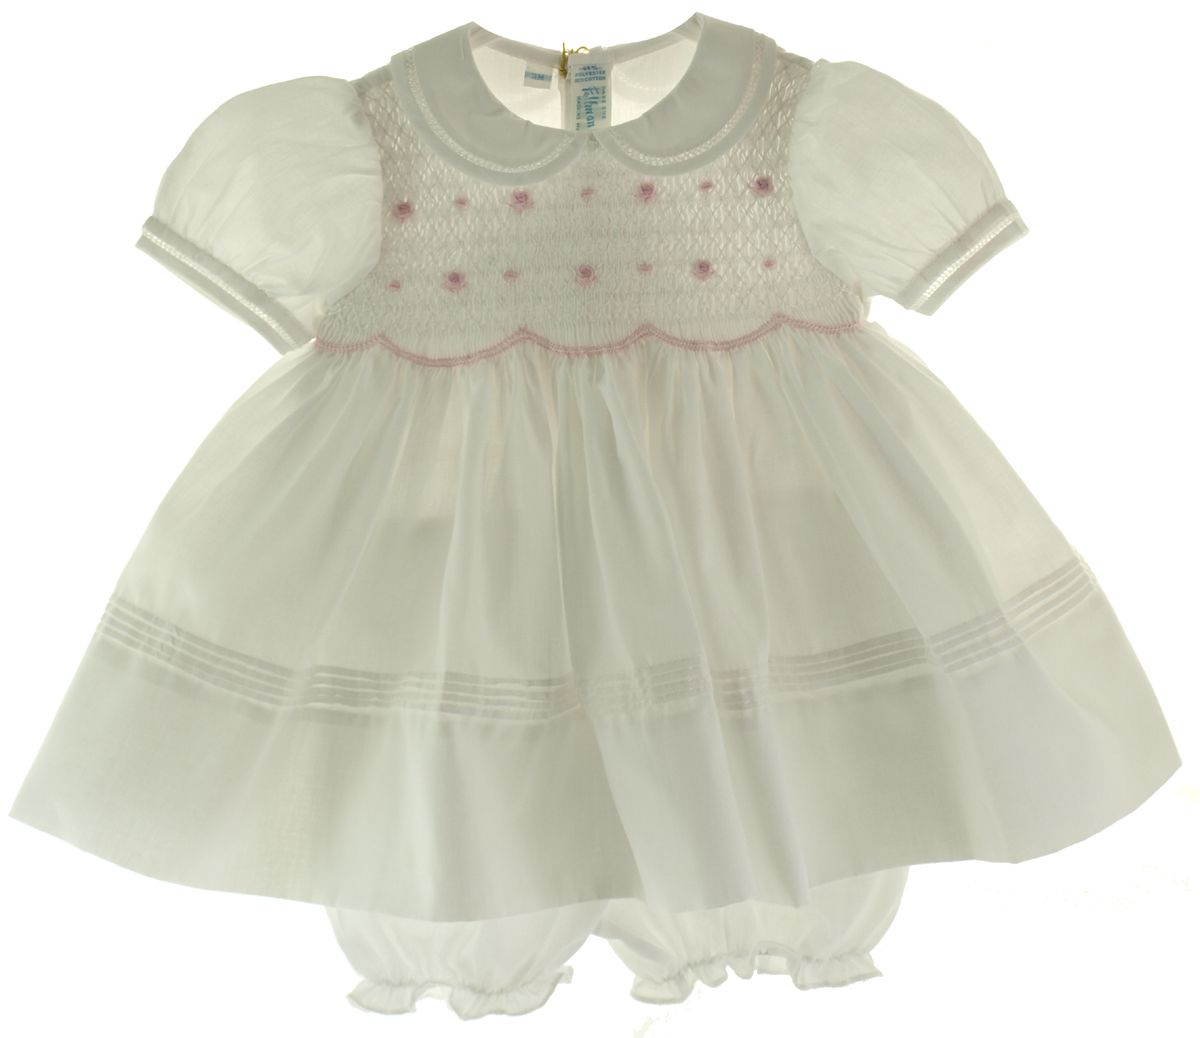 242d76aaf8d9e Feltman Brothers Infant Girls White & Pink Portrait dress with Collar and  smocked bodice comes with matching bloomers